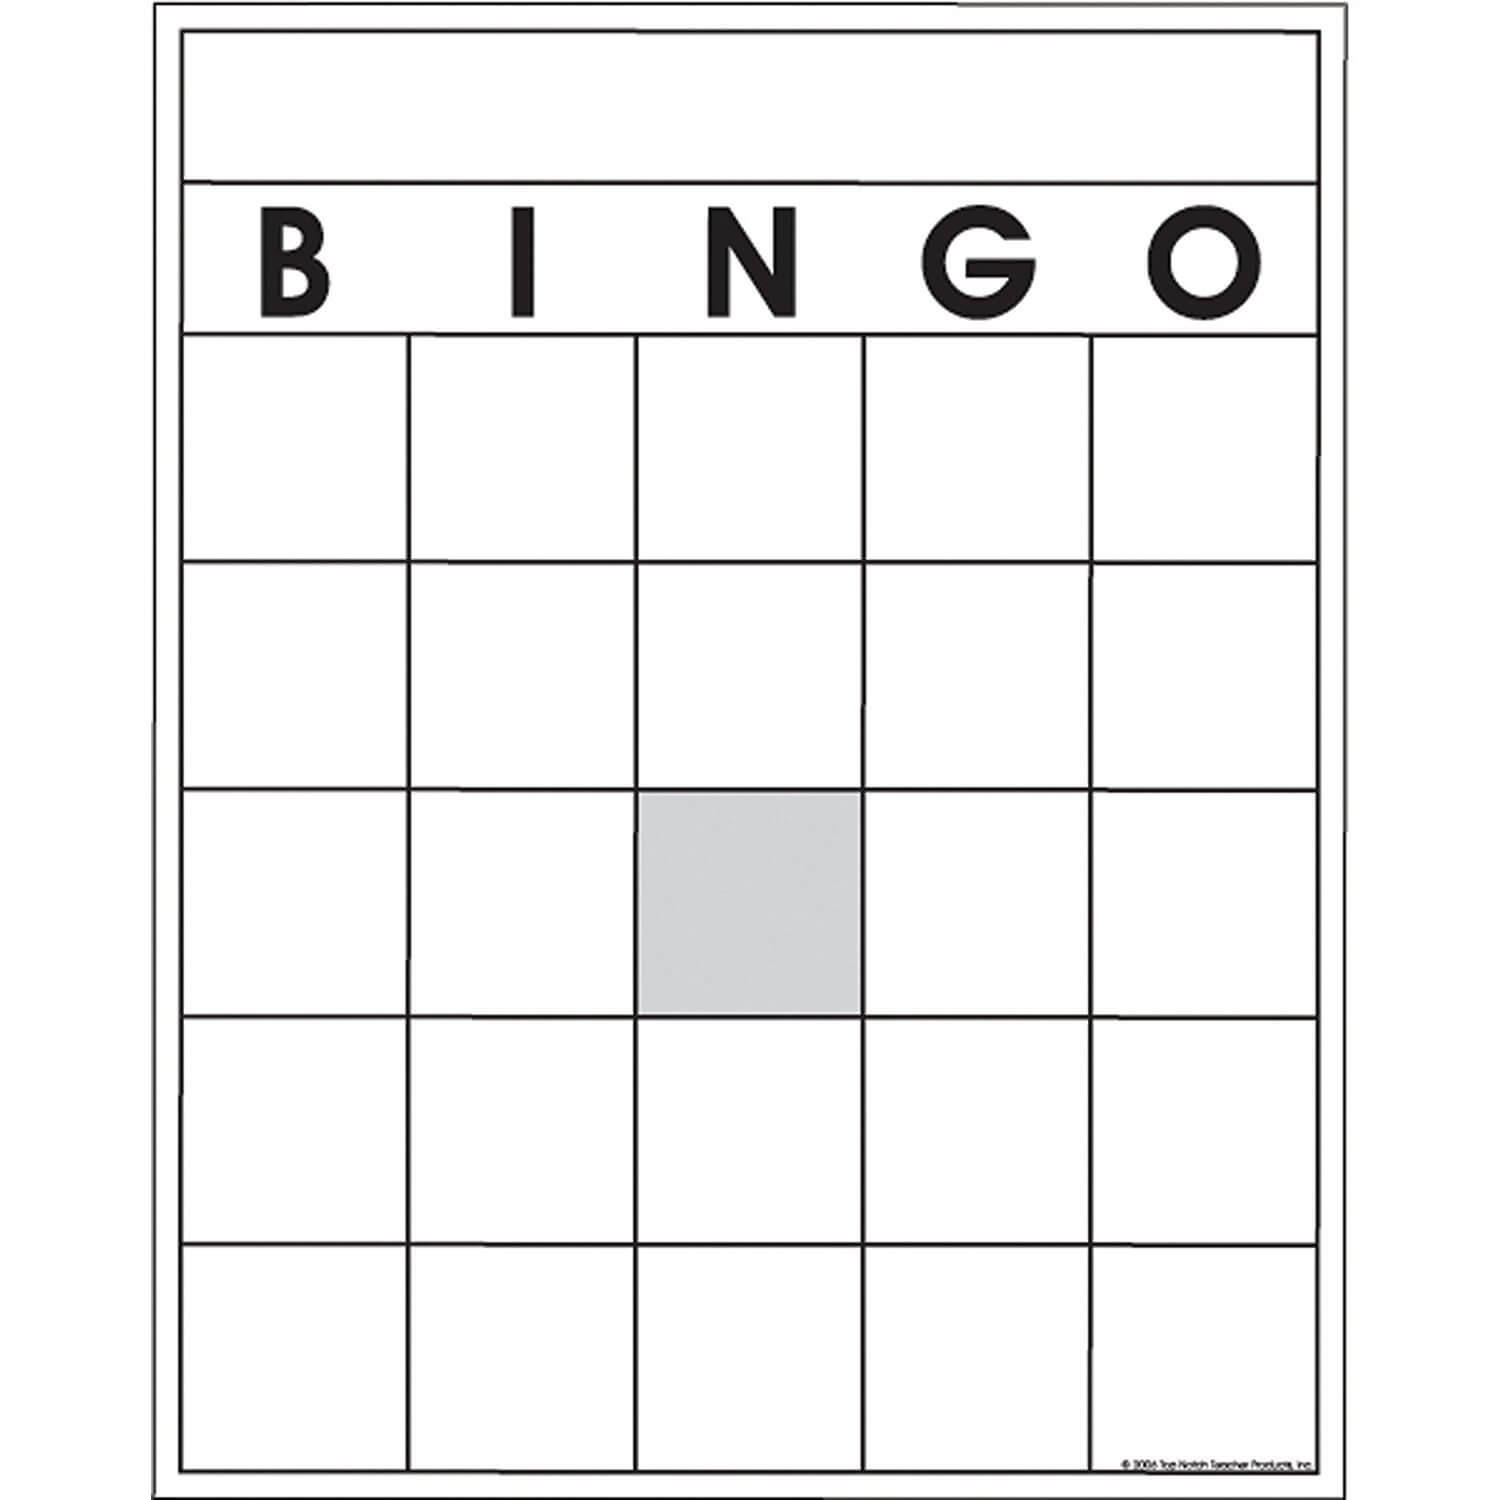 011 Blank Bingo Card Template Ideas 71Ja6Euoinl Sl1500 Within Blank Bingo Template Pdf